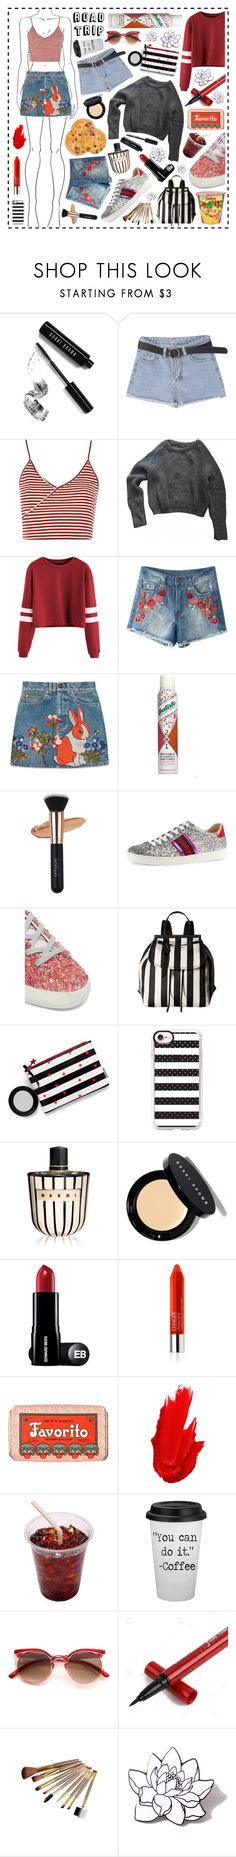 """Road trip!"" by beanpod ❤ liked on Polyvore featuring Bobbi Brown Cosmetics, Topshop, American Apparel, Gucci, Batiste, Golden Goose, Marc Jacobs, Casetify, Marni and Clinique"